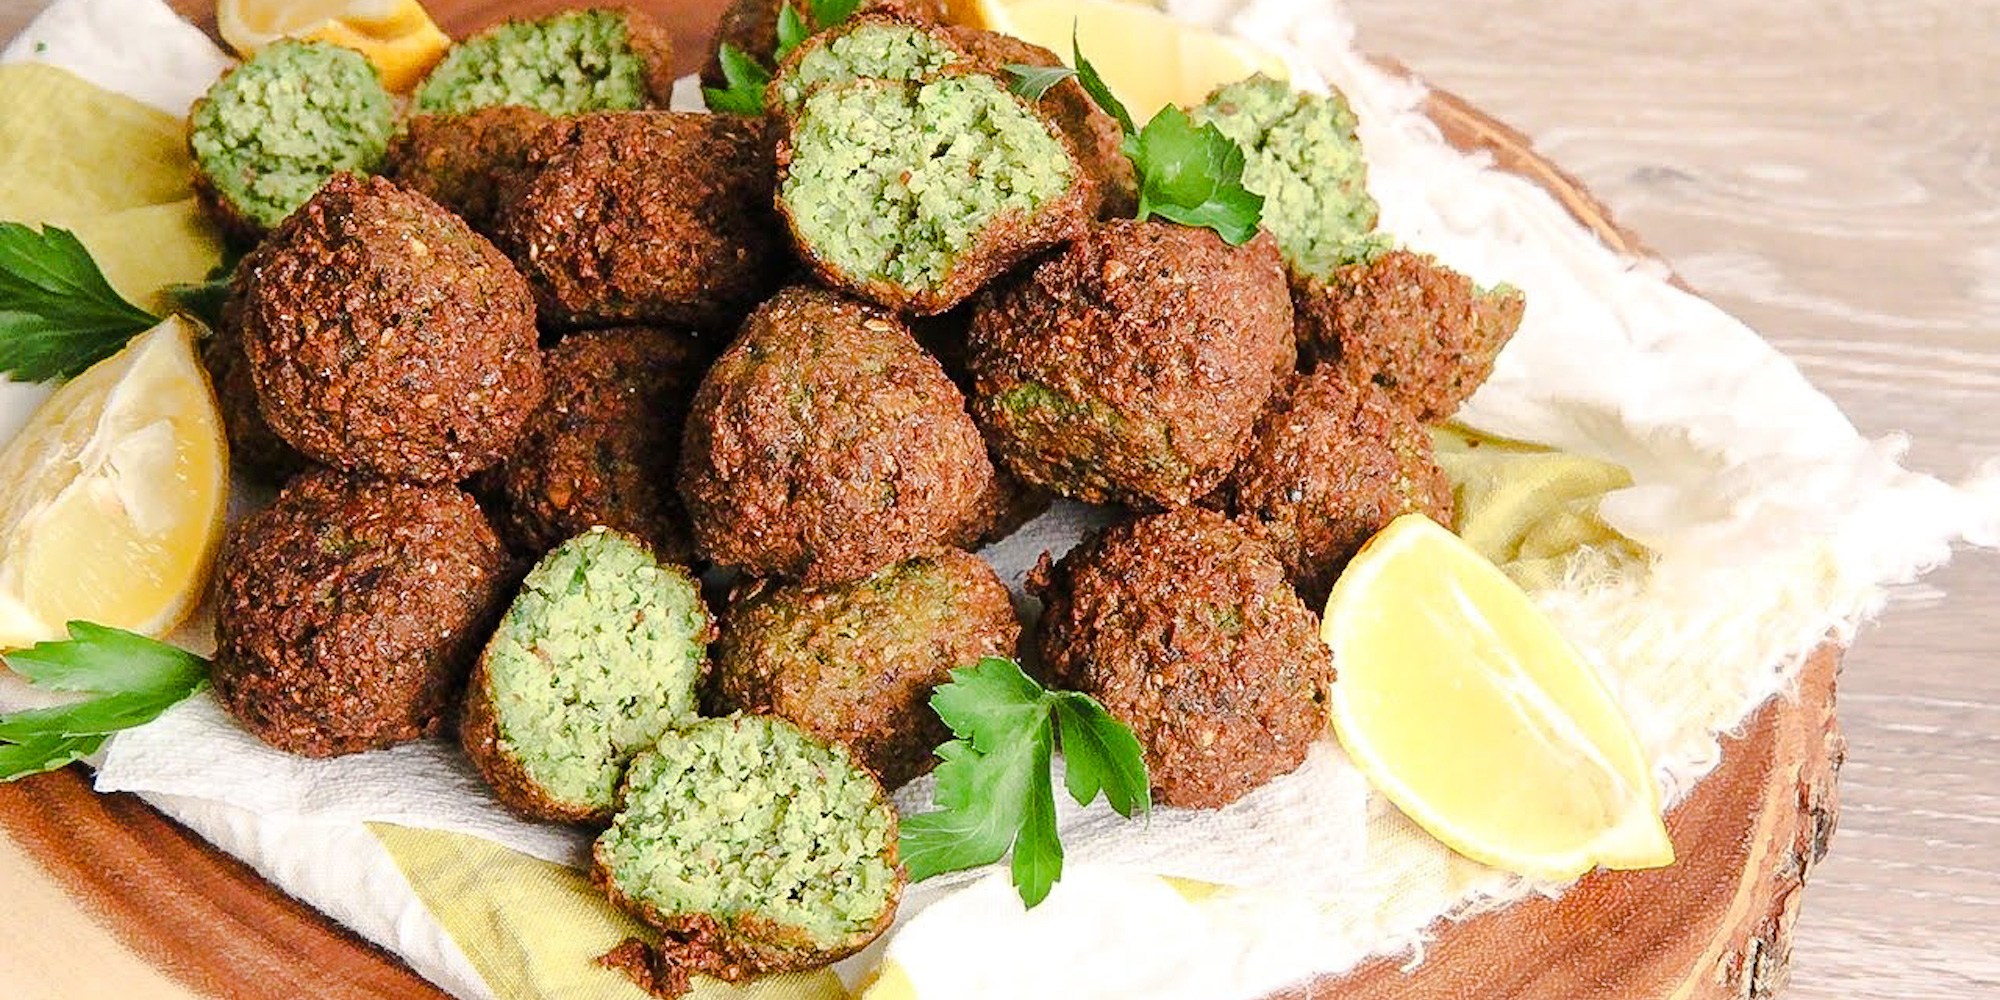 Make crispy falafel without deep-frying by baking them in the oven